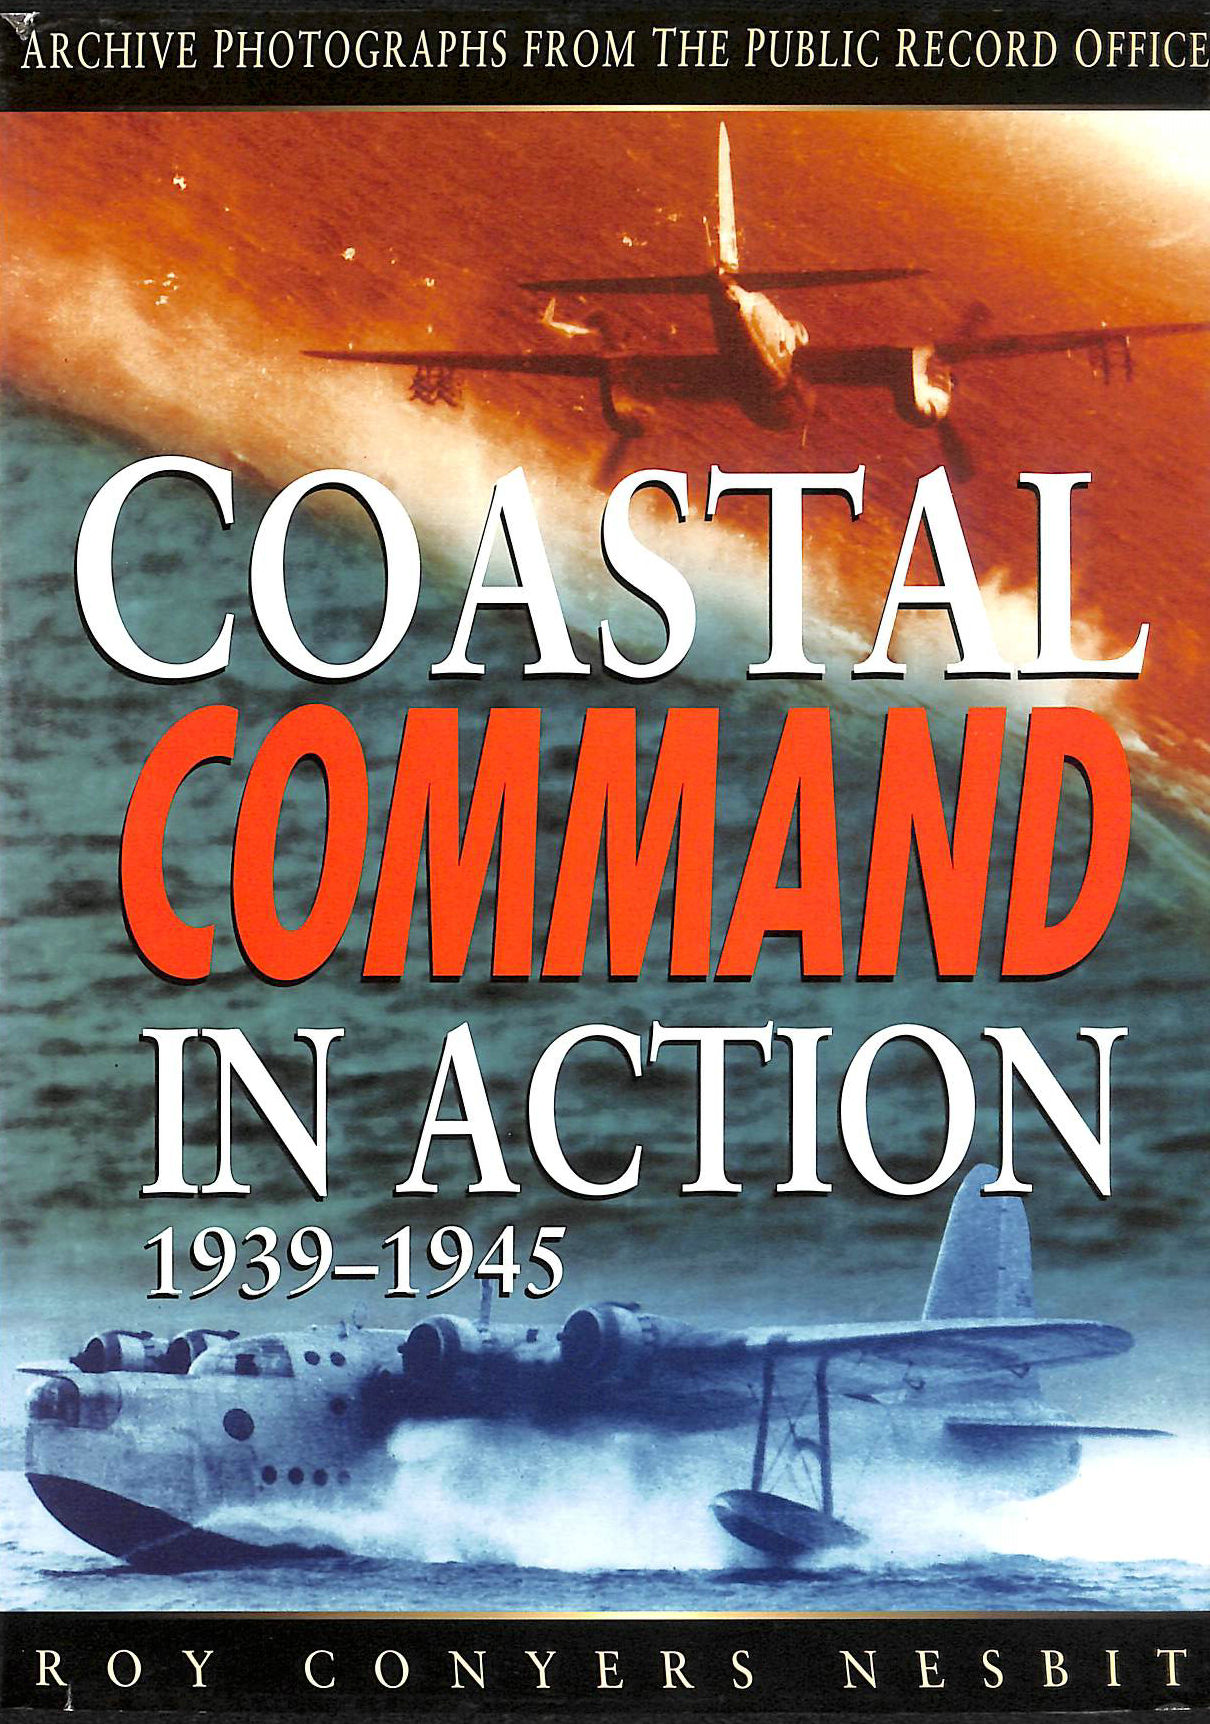 Image for RAF Coastal Command in Action, 1939-45: Archive Photographs from the Public Record Office